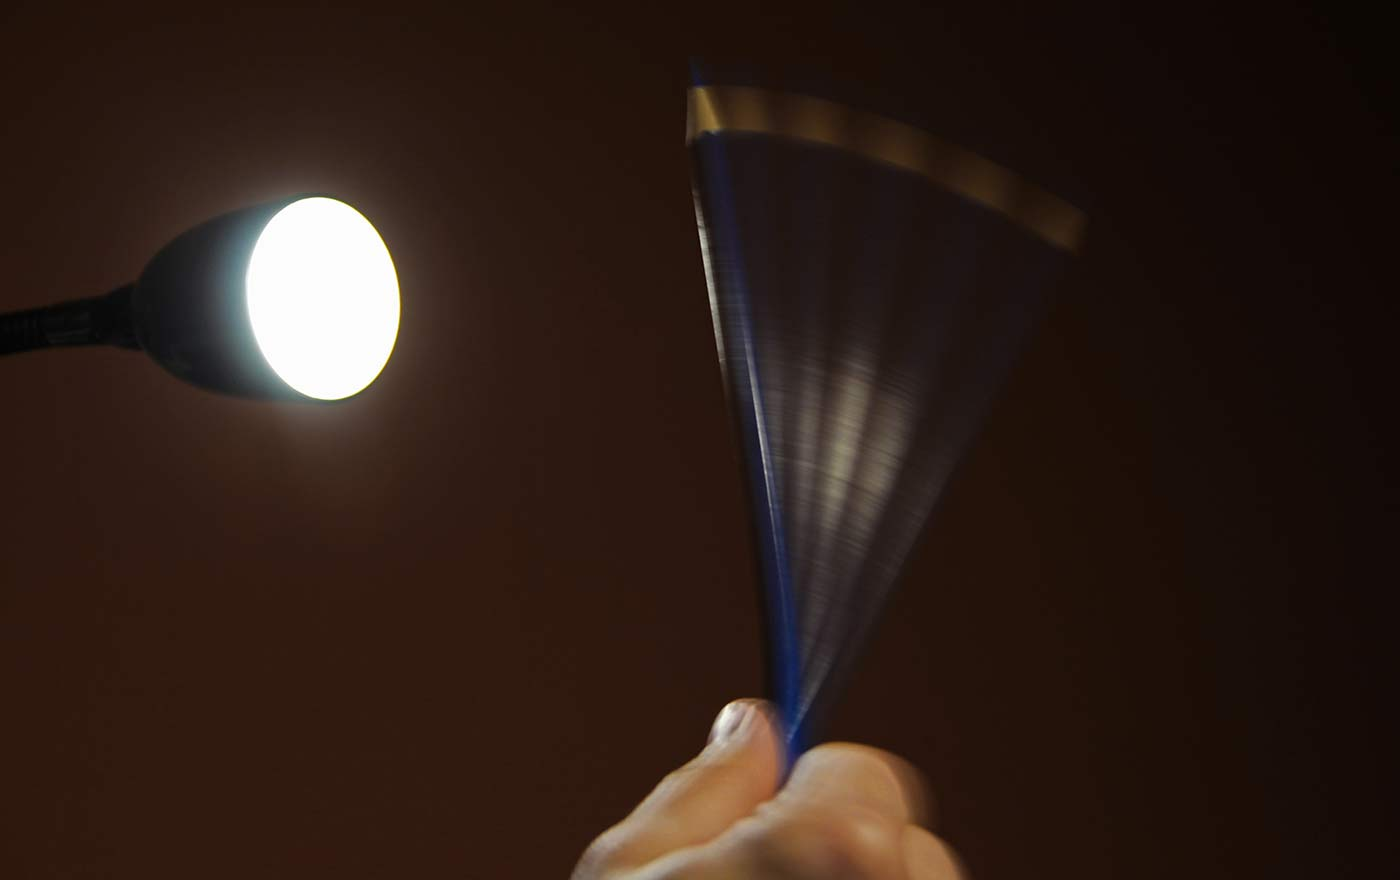 Check for flickering of the lamp using the pencil test